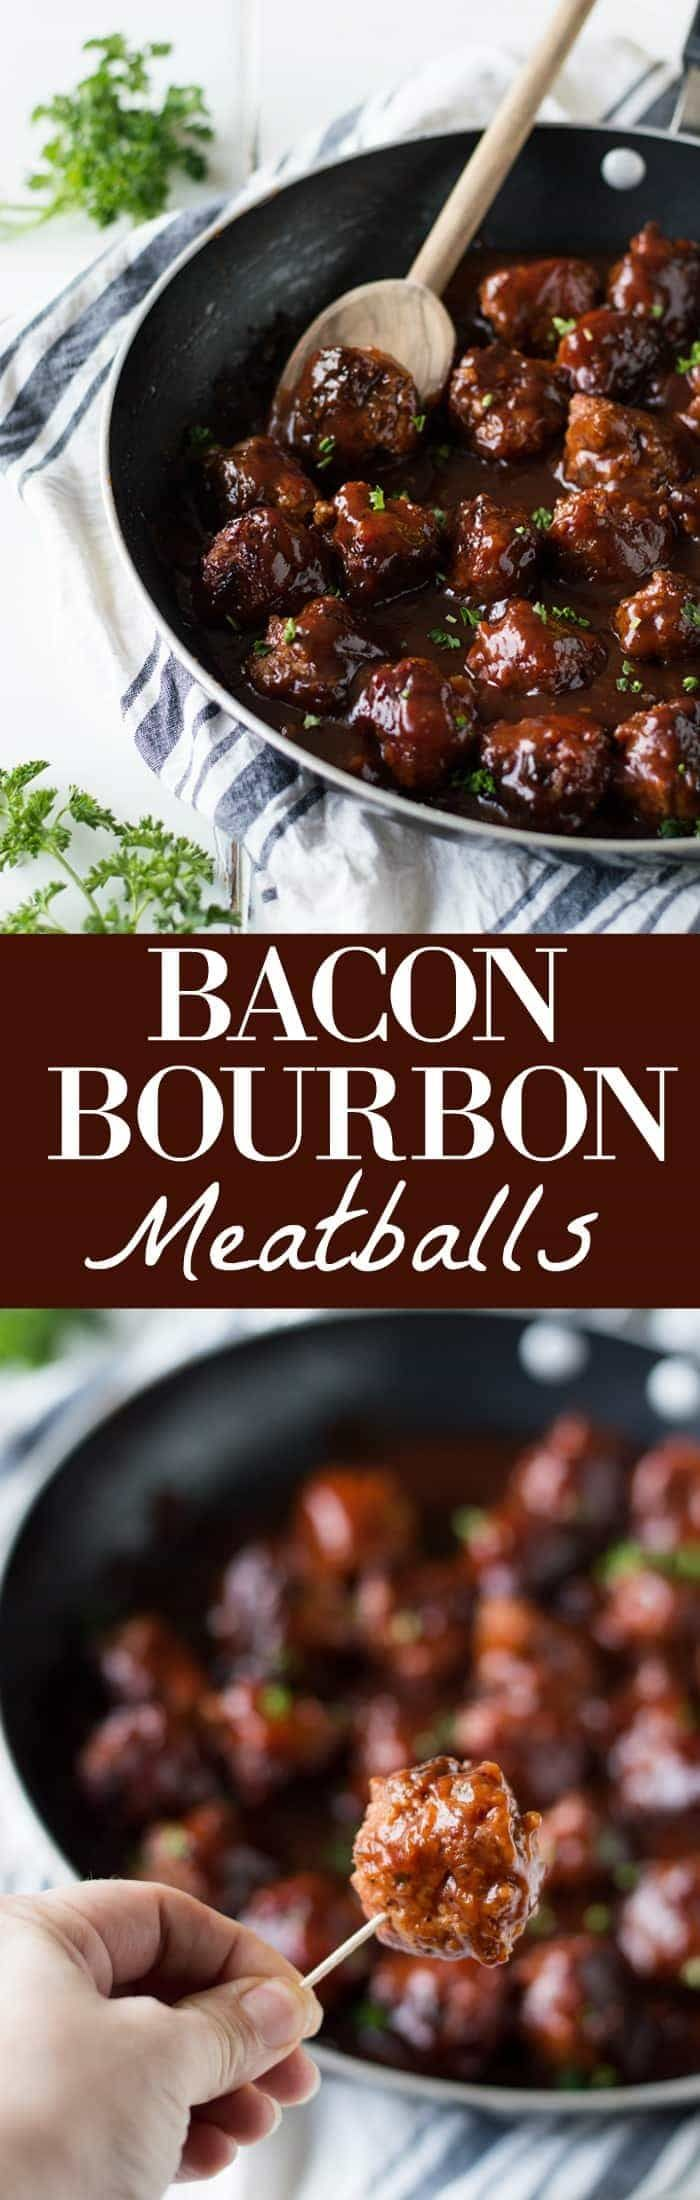 Bacon Bourbon Meatballs! These meatballs are made with bacon and ground beef and simmered in a bourbon bbq sauce. Perfect to serve as an appetizer for the big game or on a sandwich for family dinner! You guys. These meatballs. They're made with….wait for it… Wait for it…. Bacon! Whoa. Mind blown right? That's right....Read More